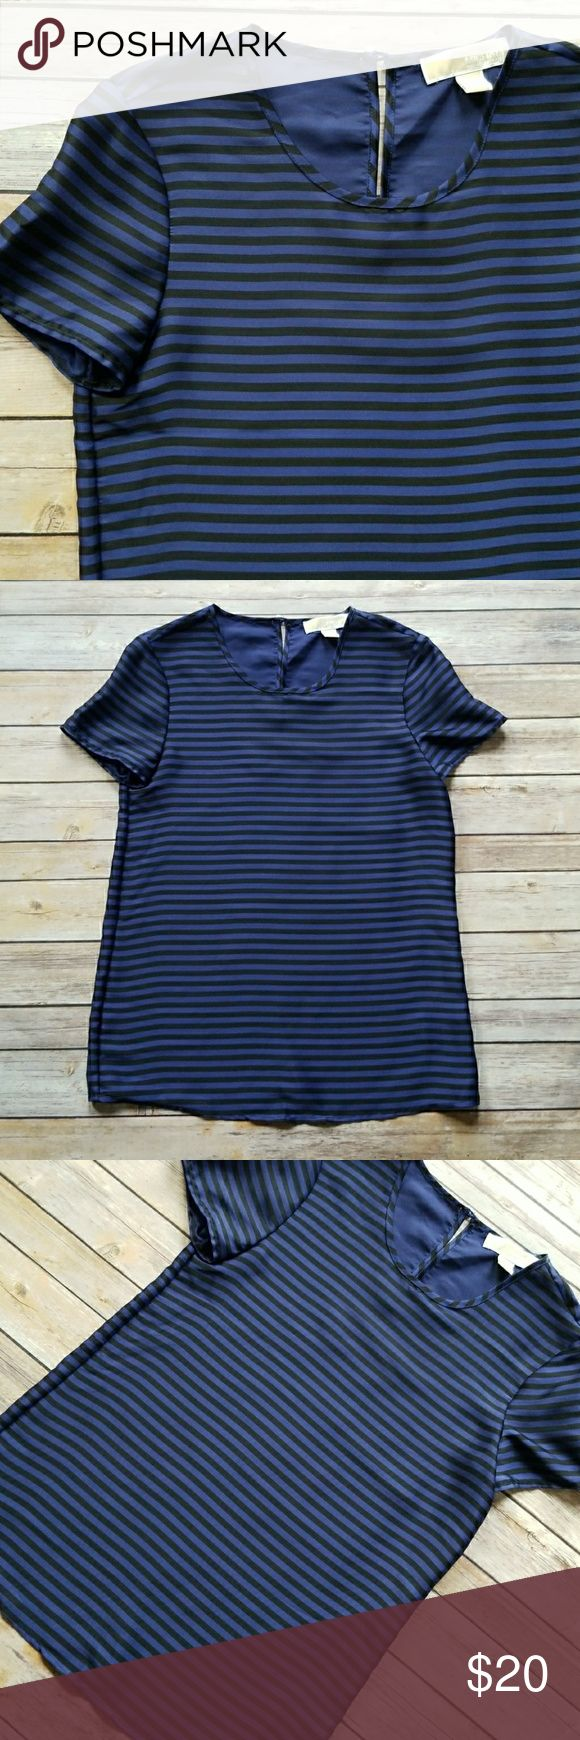 """Michael Kors Striped Short Sleeve Top Michael Kors Striped Short Sleeve Top  *Blue and black horizontal stripe pattern *Satin-like feel *Short sleeves *Loose fitting *Back keyhole cutout detail with button closure *100% Polyester *Excellent pre-owned condition. No rips, holes, stains or pulls *Size X-small  Shoulder to bottom: approx. 24 1/2"""" Underarm to underarm: approx. 17"""" MICHAEL Michael Kors Tops"""